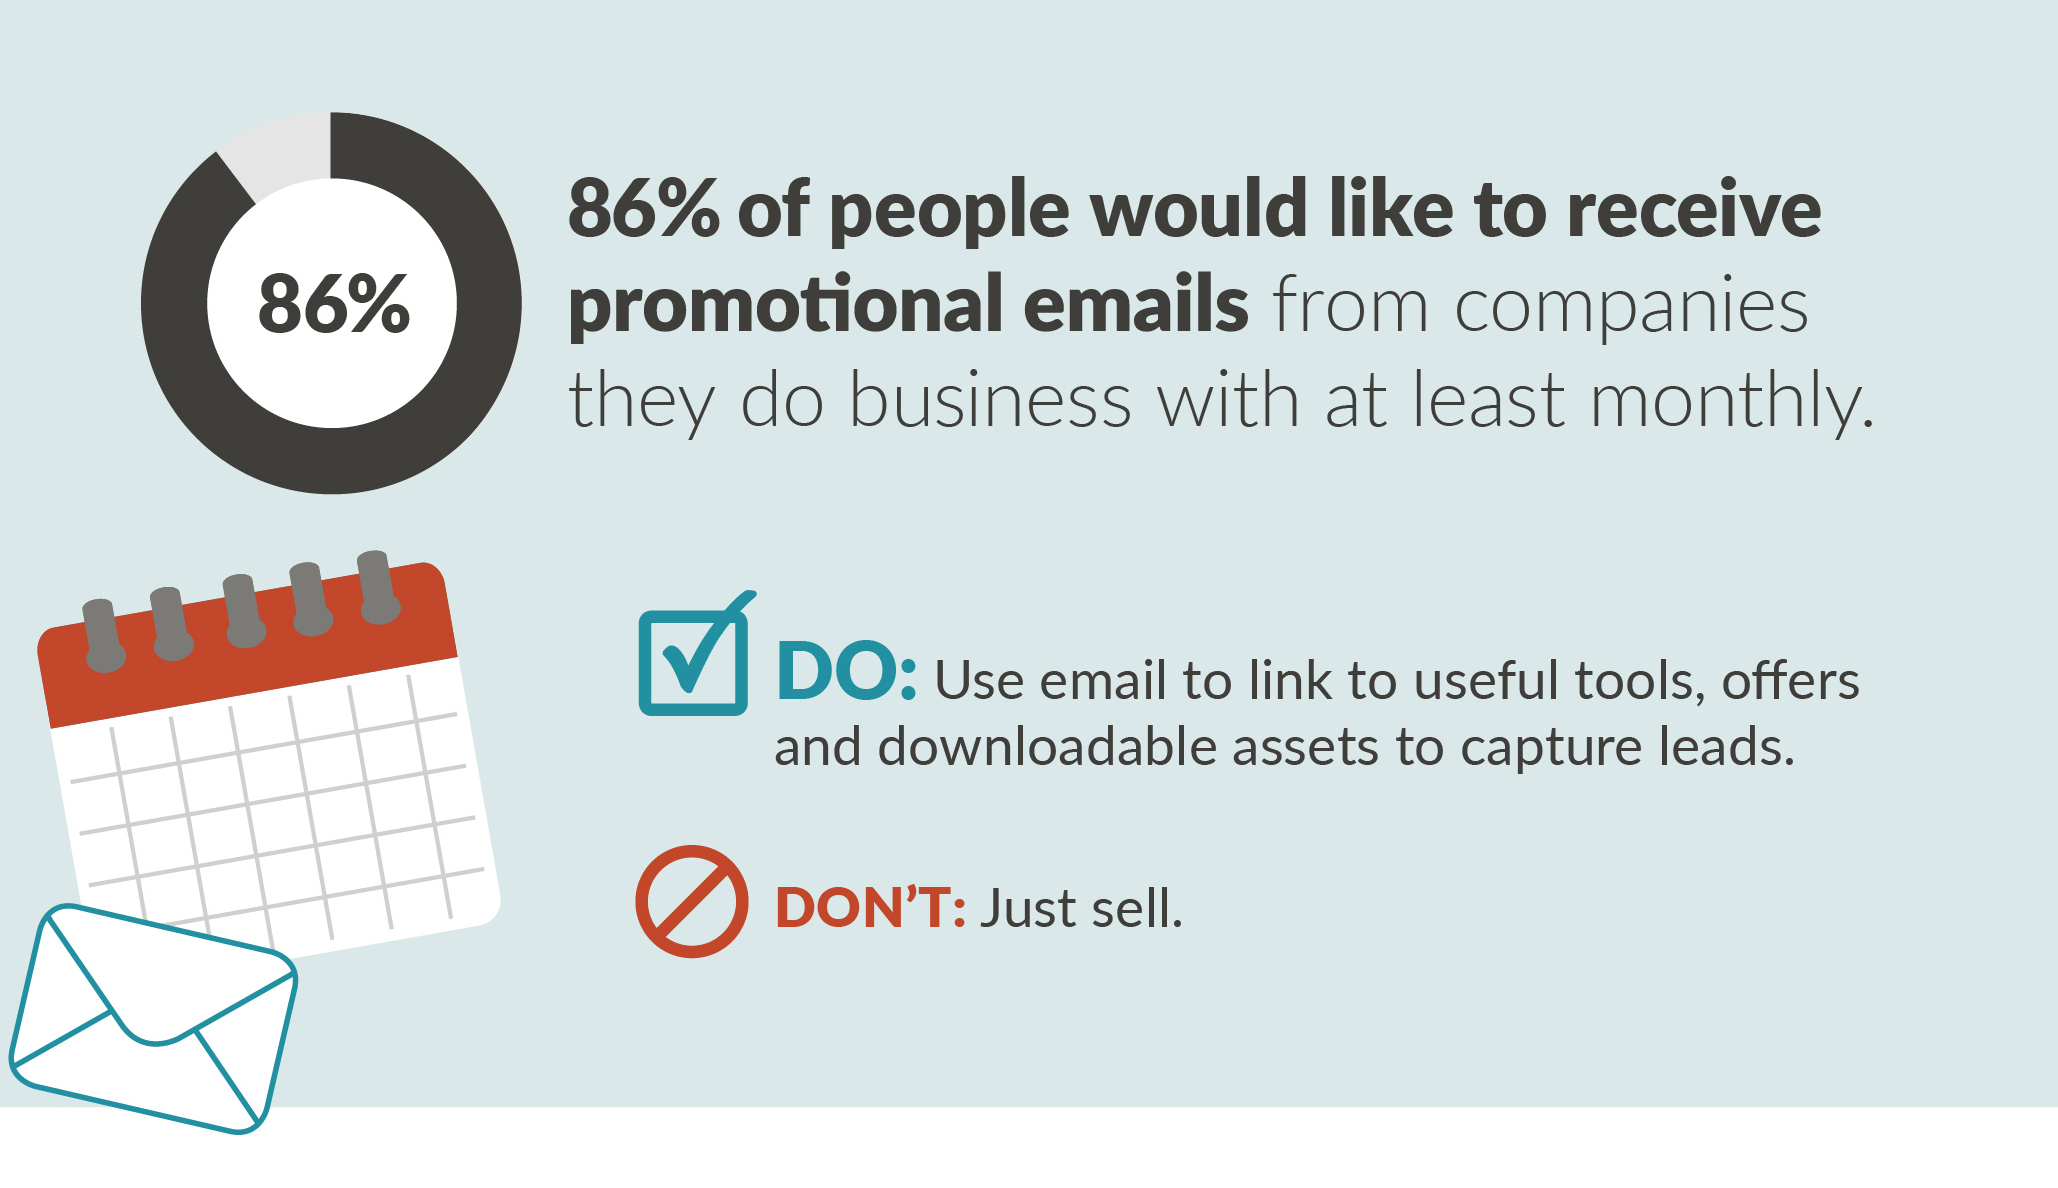 86% of people would like to receive promotional emails